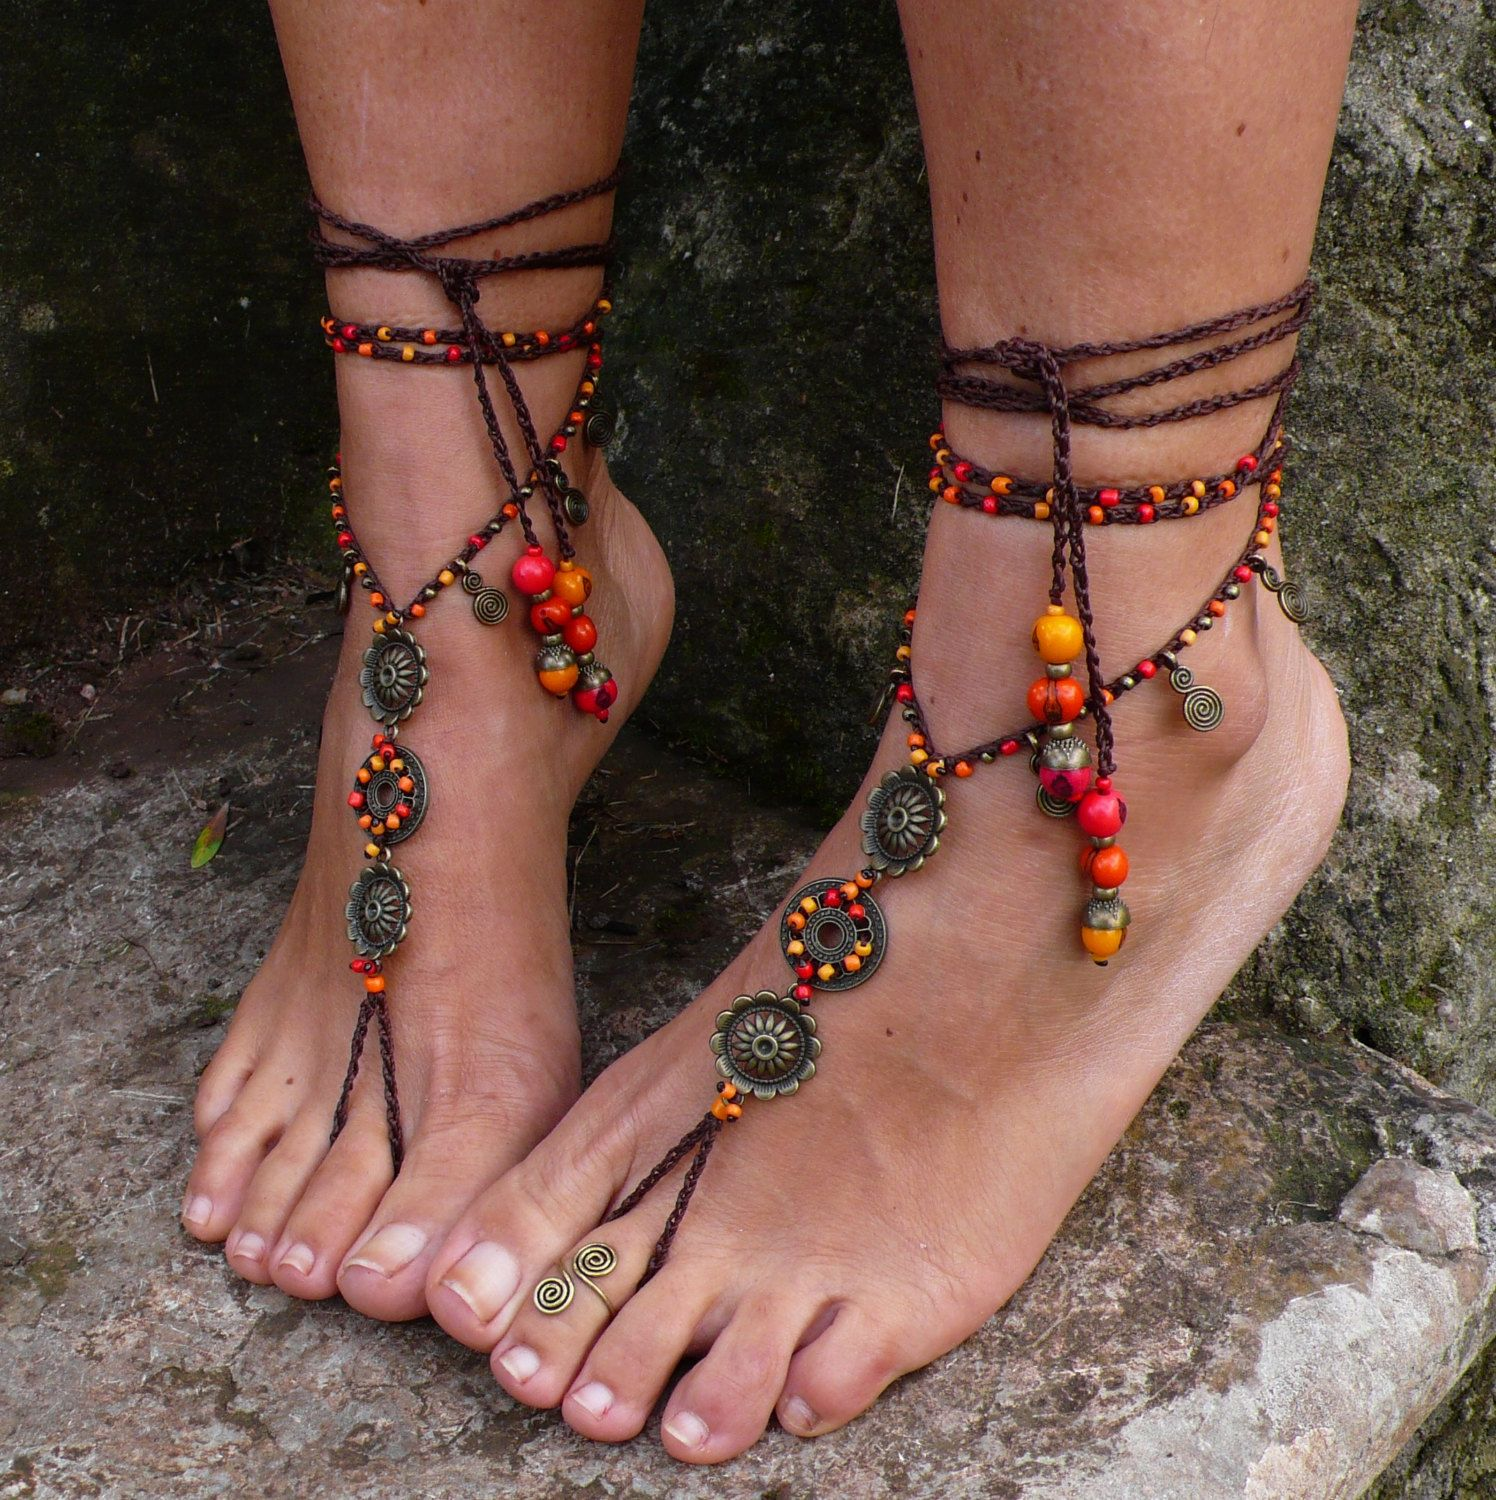 boho jewelry female in wedding anklets item crystal from foot leg sandals barefoot sexy scorpion bracelet fashion beach anklet pie chain